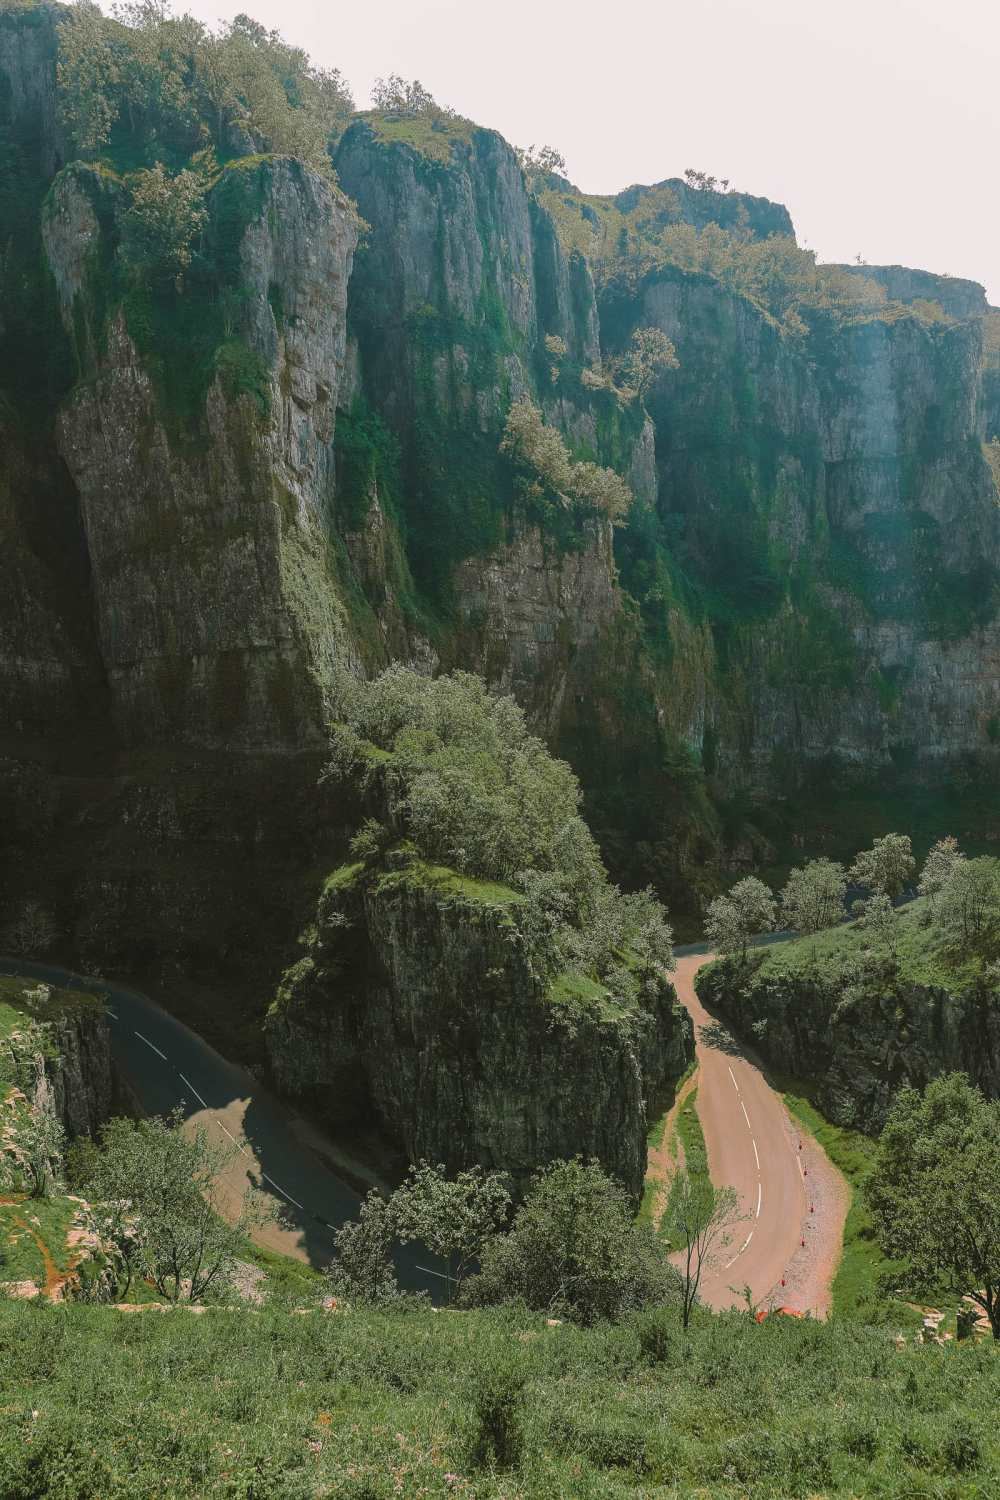 Cheddar Gorge near the city of Wells